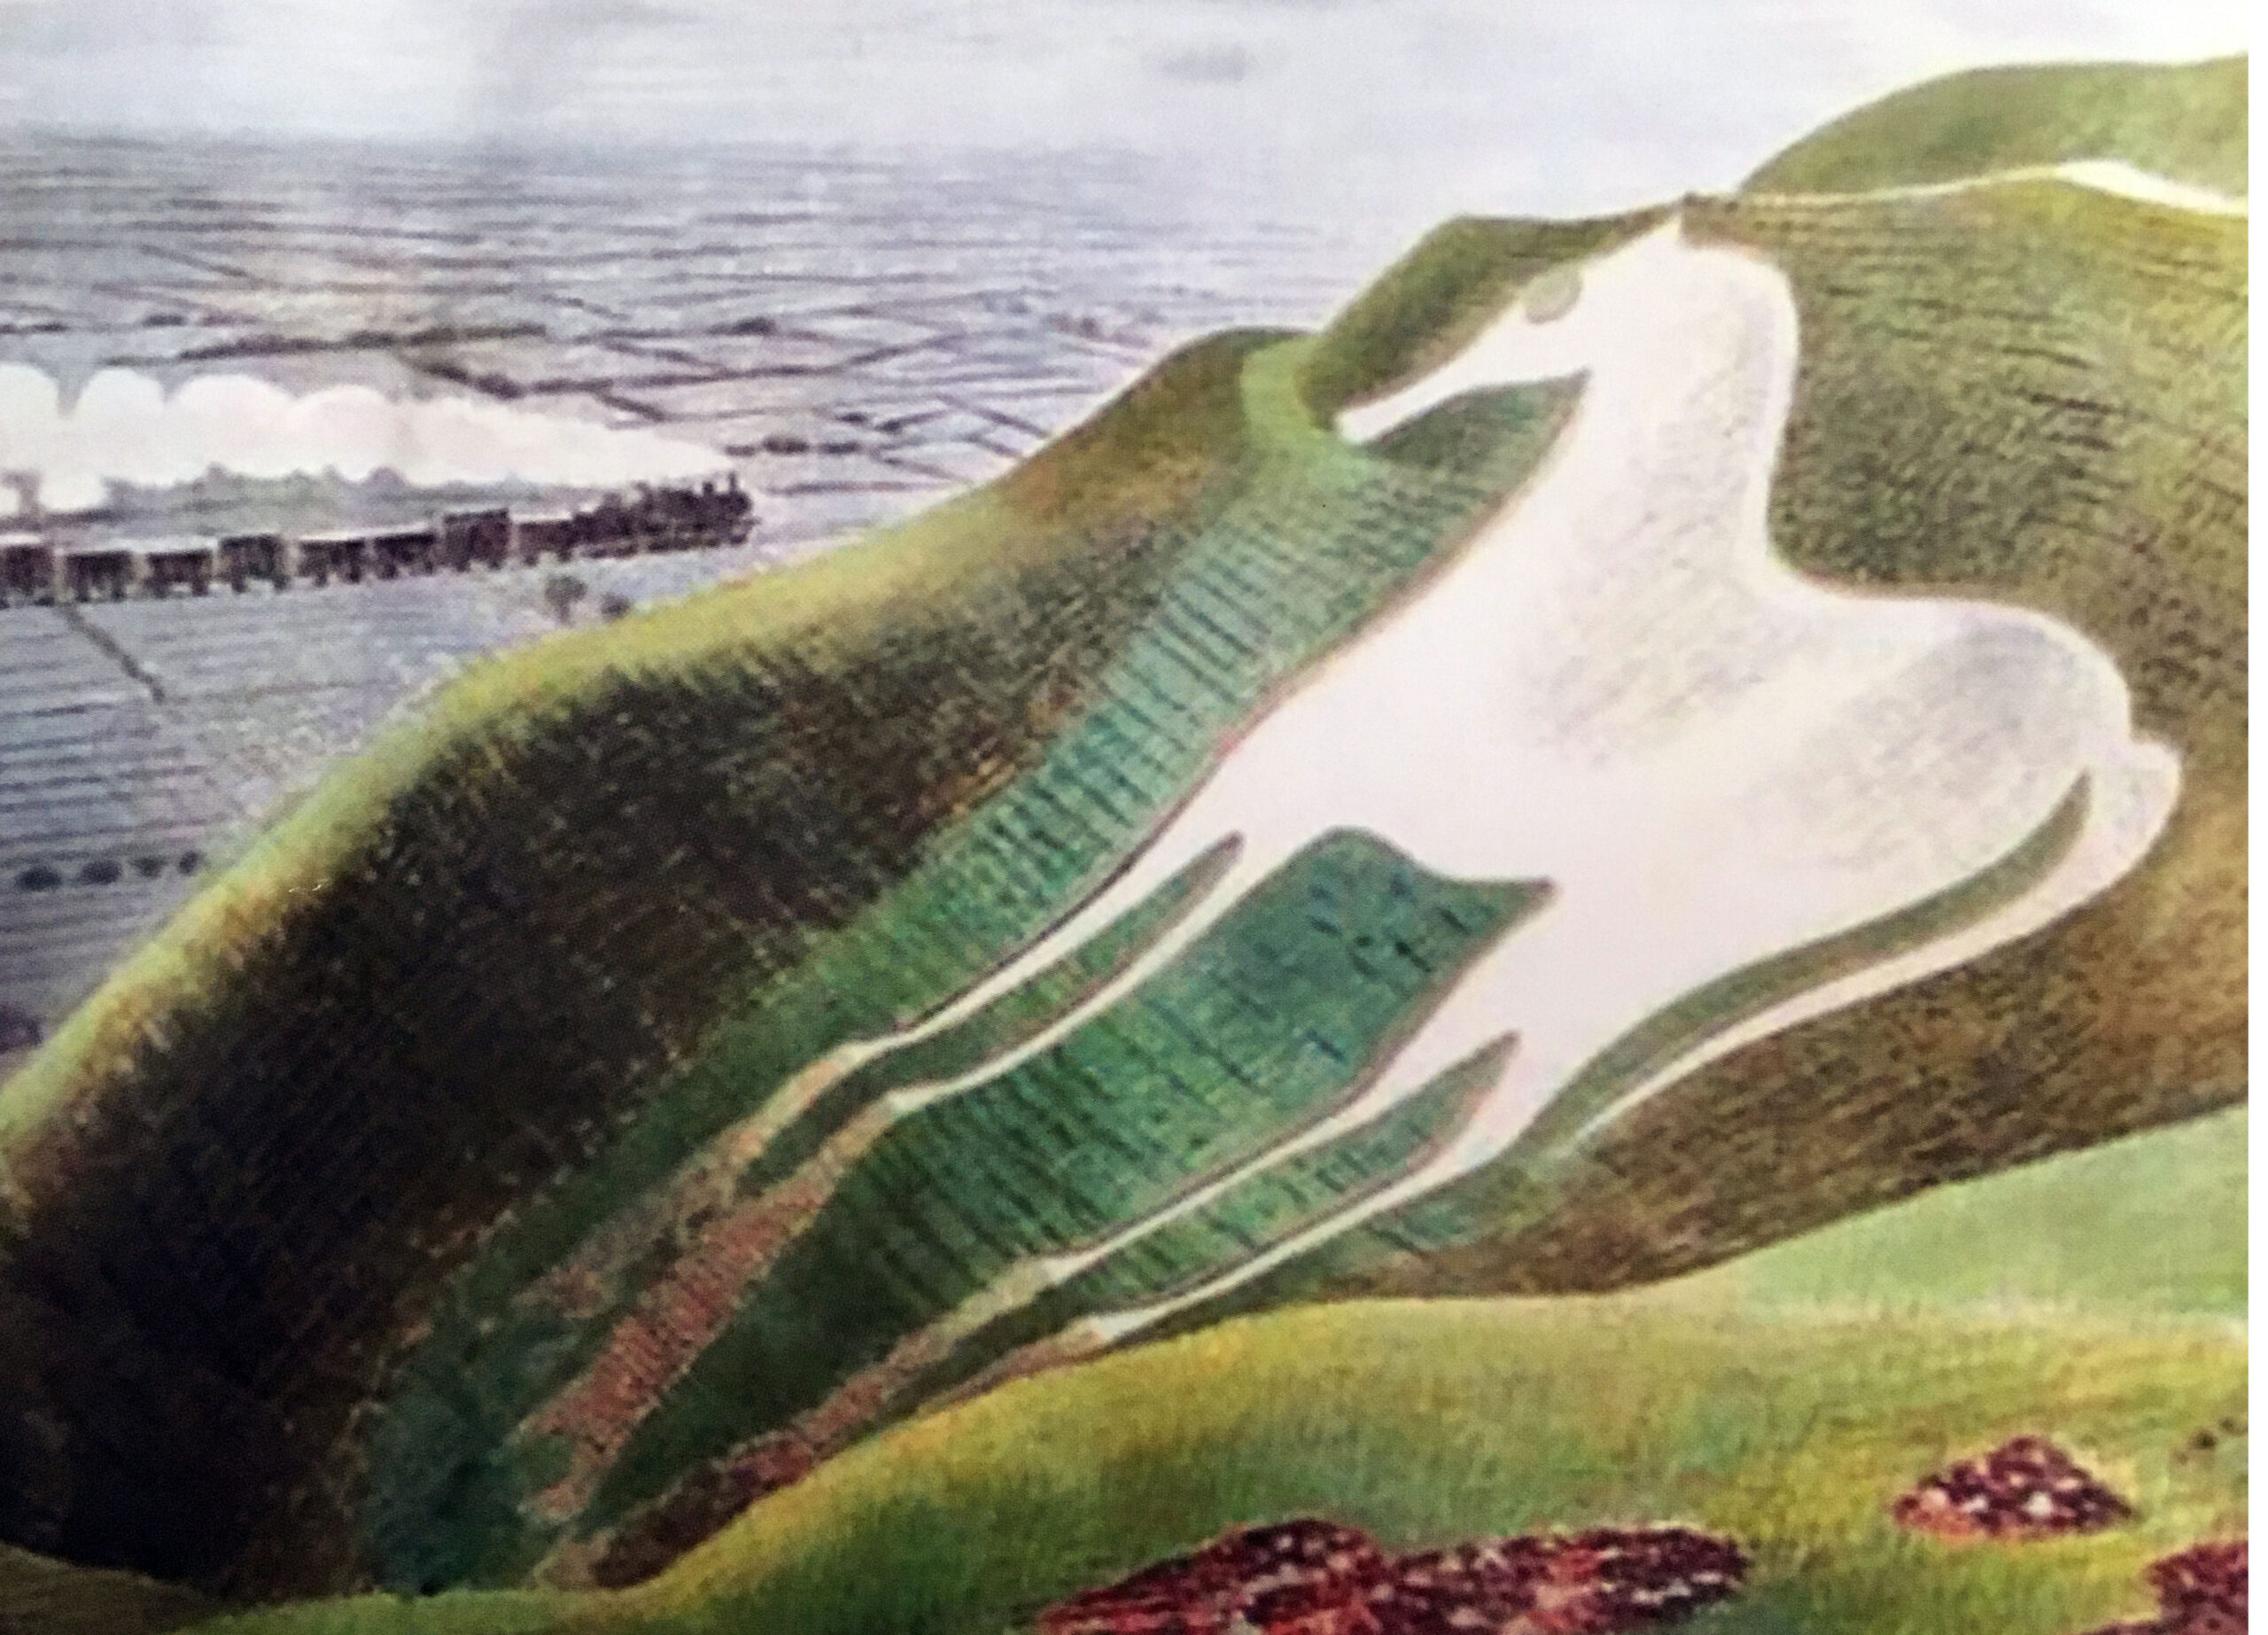 Roll on Ravilious!